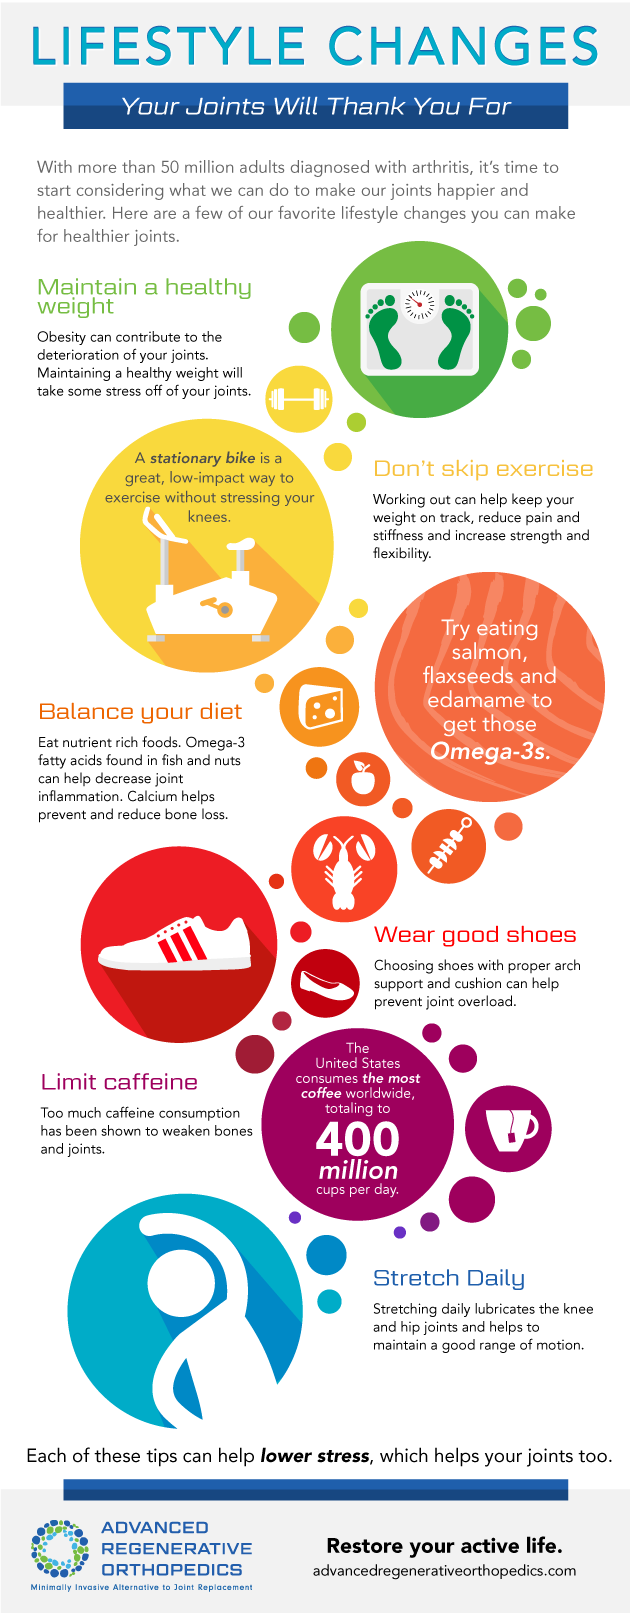 Lifestyle Changes infographic